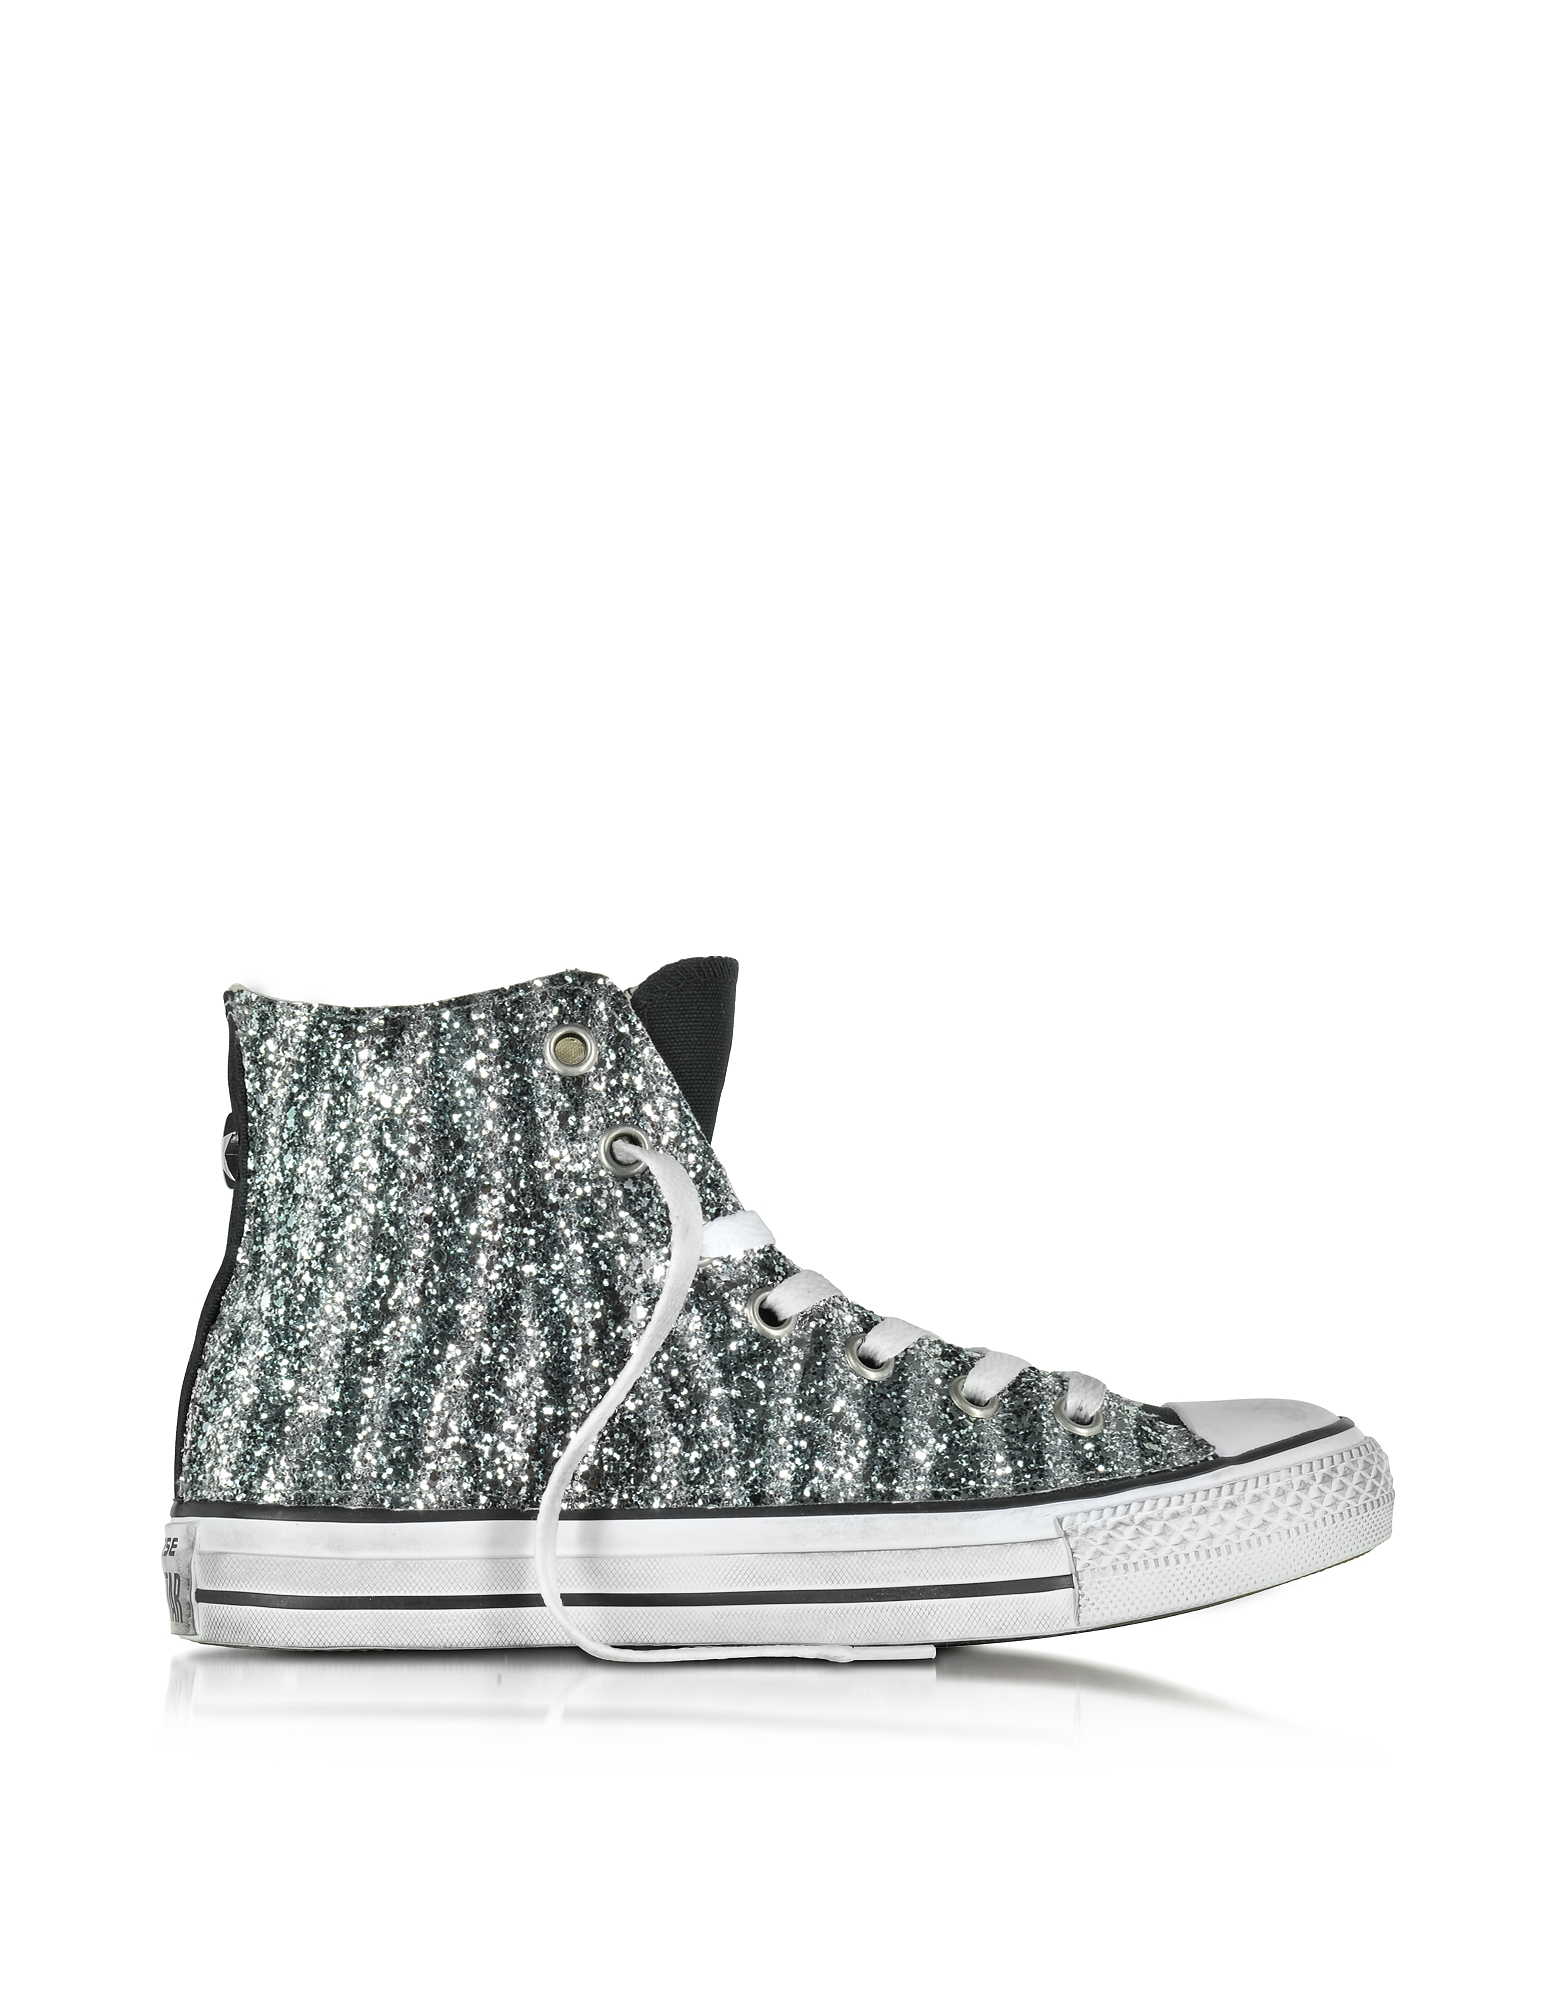 Converse Limited Edition Shoes, All Star High Animal Glitter LTD Women's Sneaker